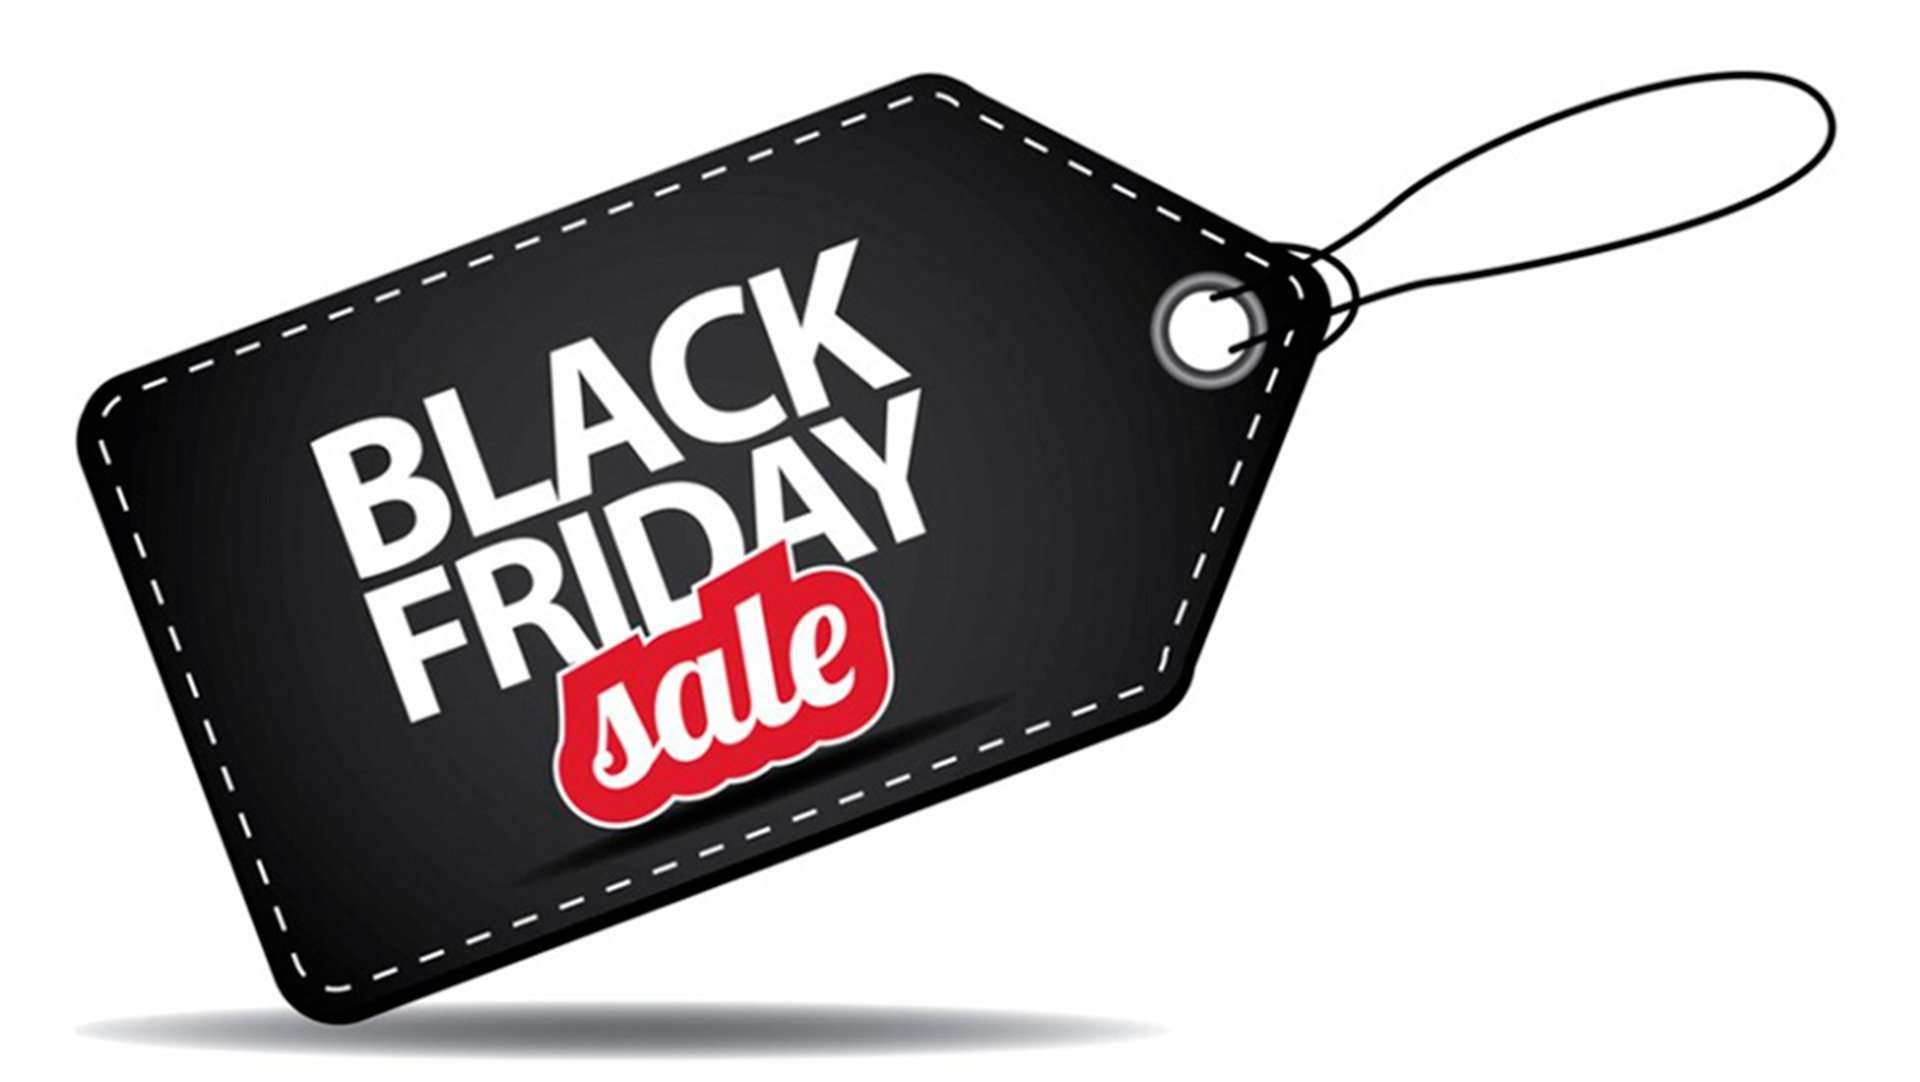 Black friday 2016 clipart graphic black and white library Best Black Friday drone deals SALE — 2016 — DroneLifestyle.com graphic black and white library